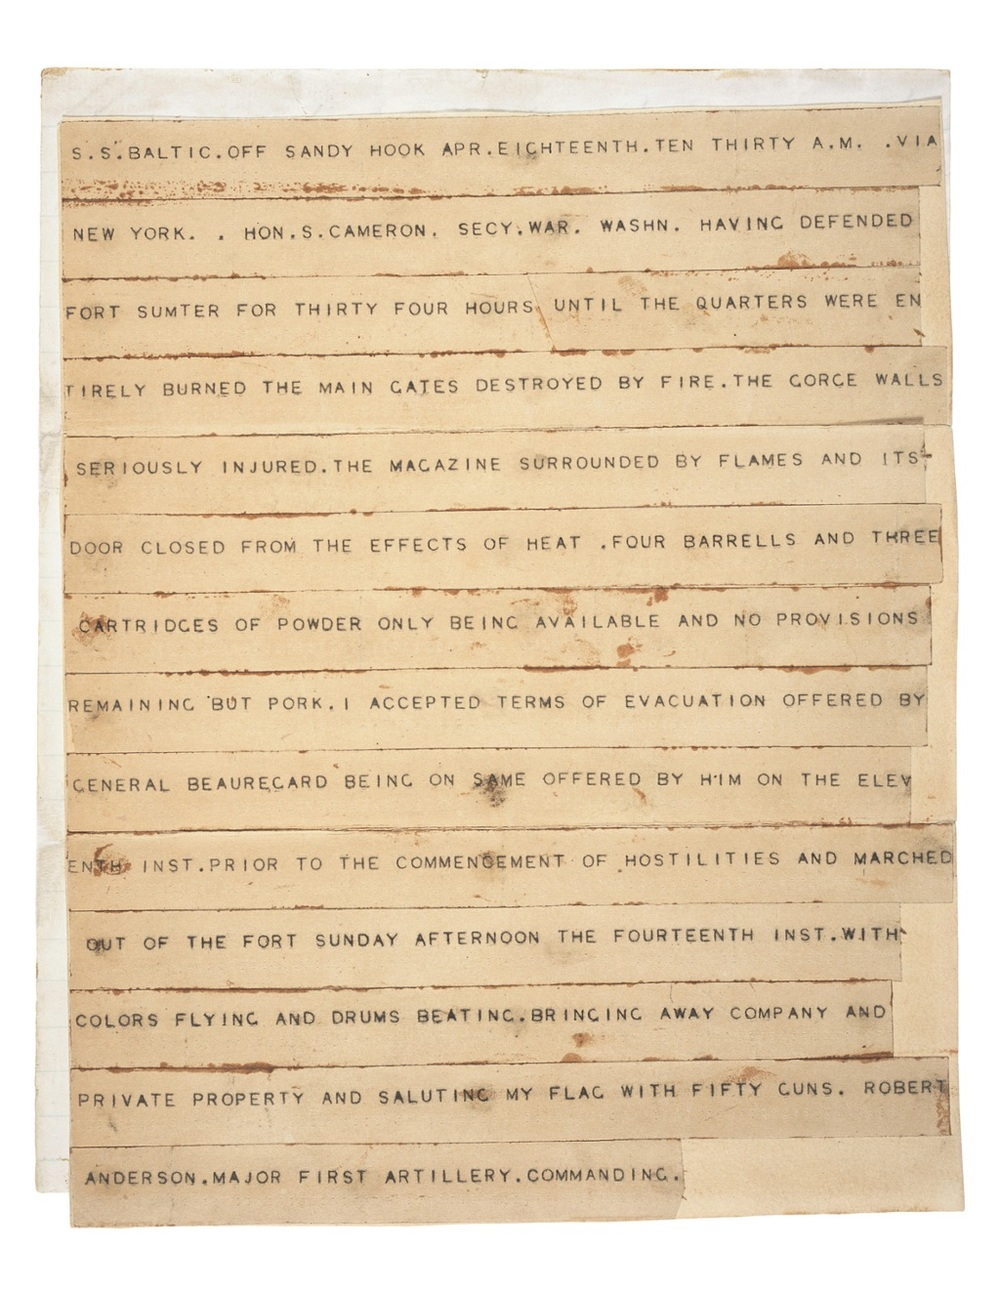 The Telegram That Broke News of the Civil War